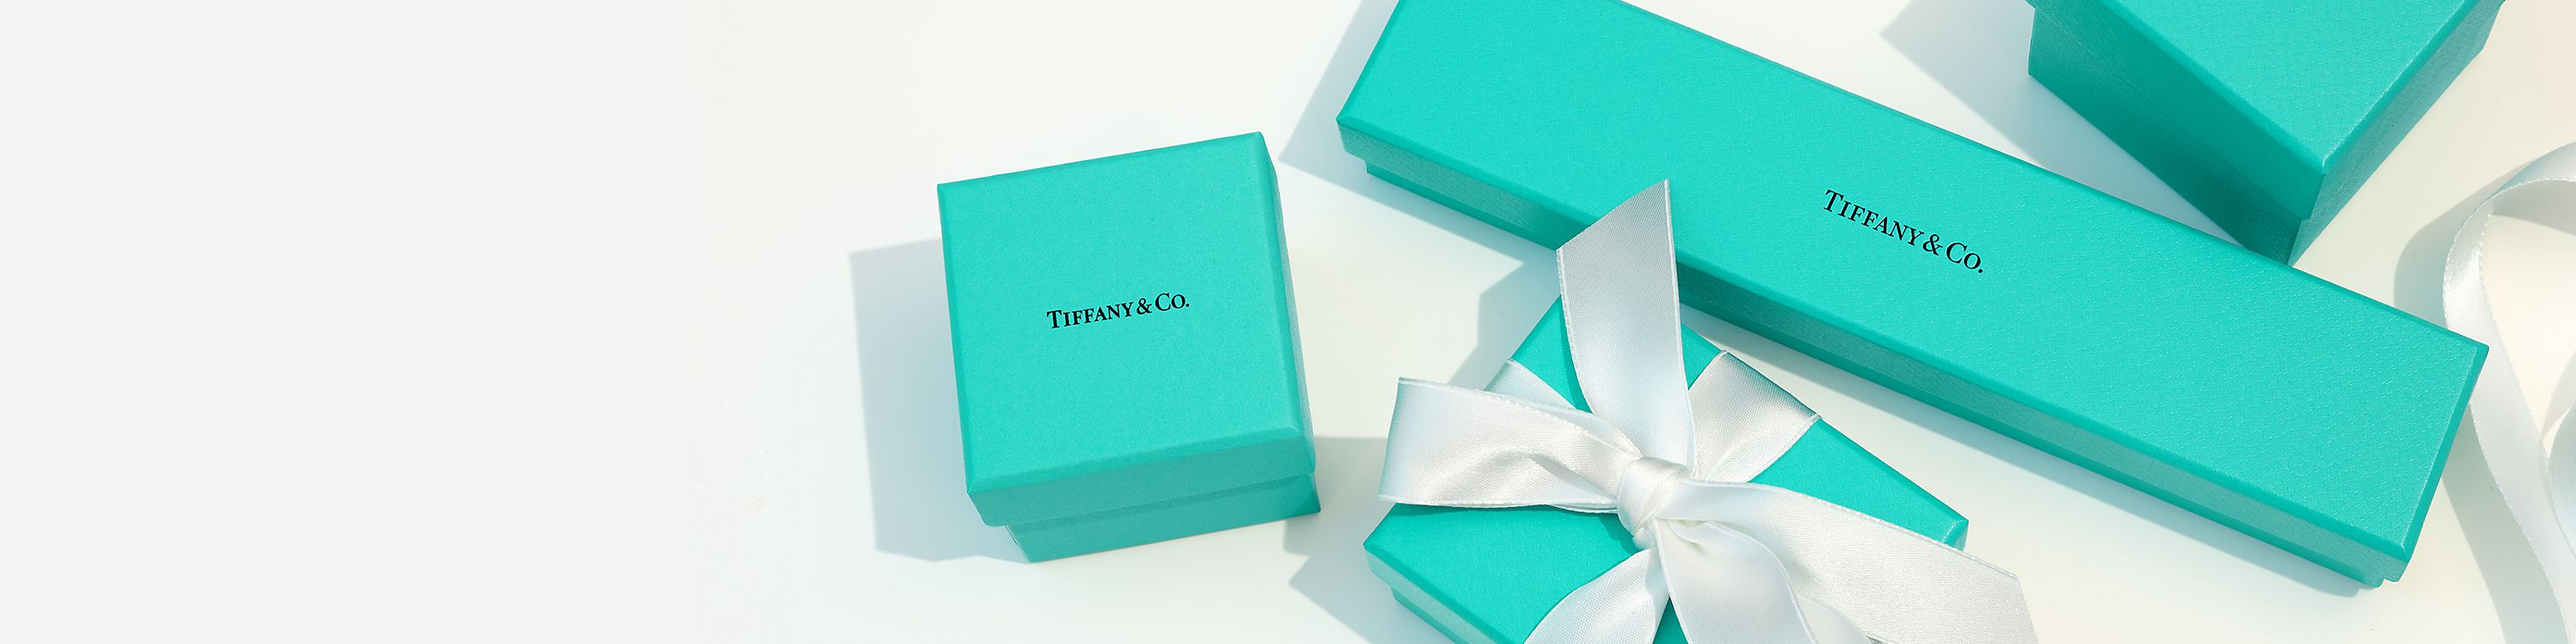 Luxury Anniversary Gifts For Her Him Tiffany Co